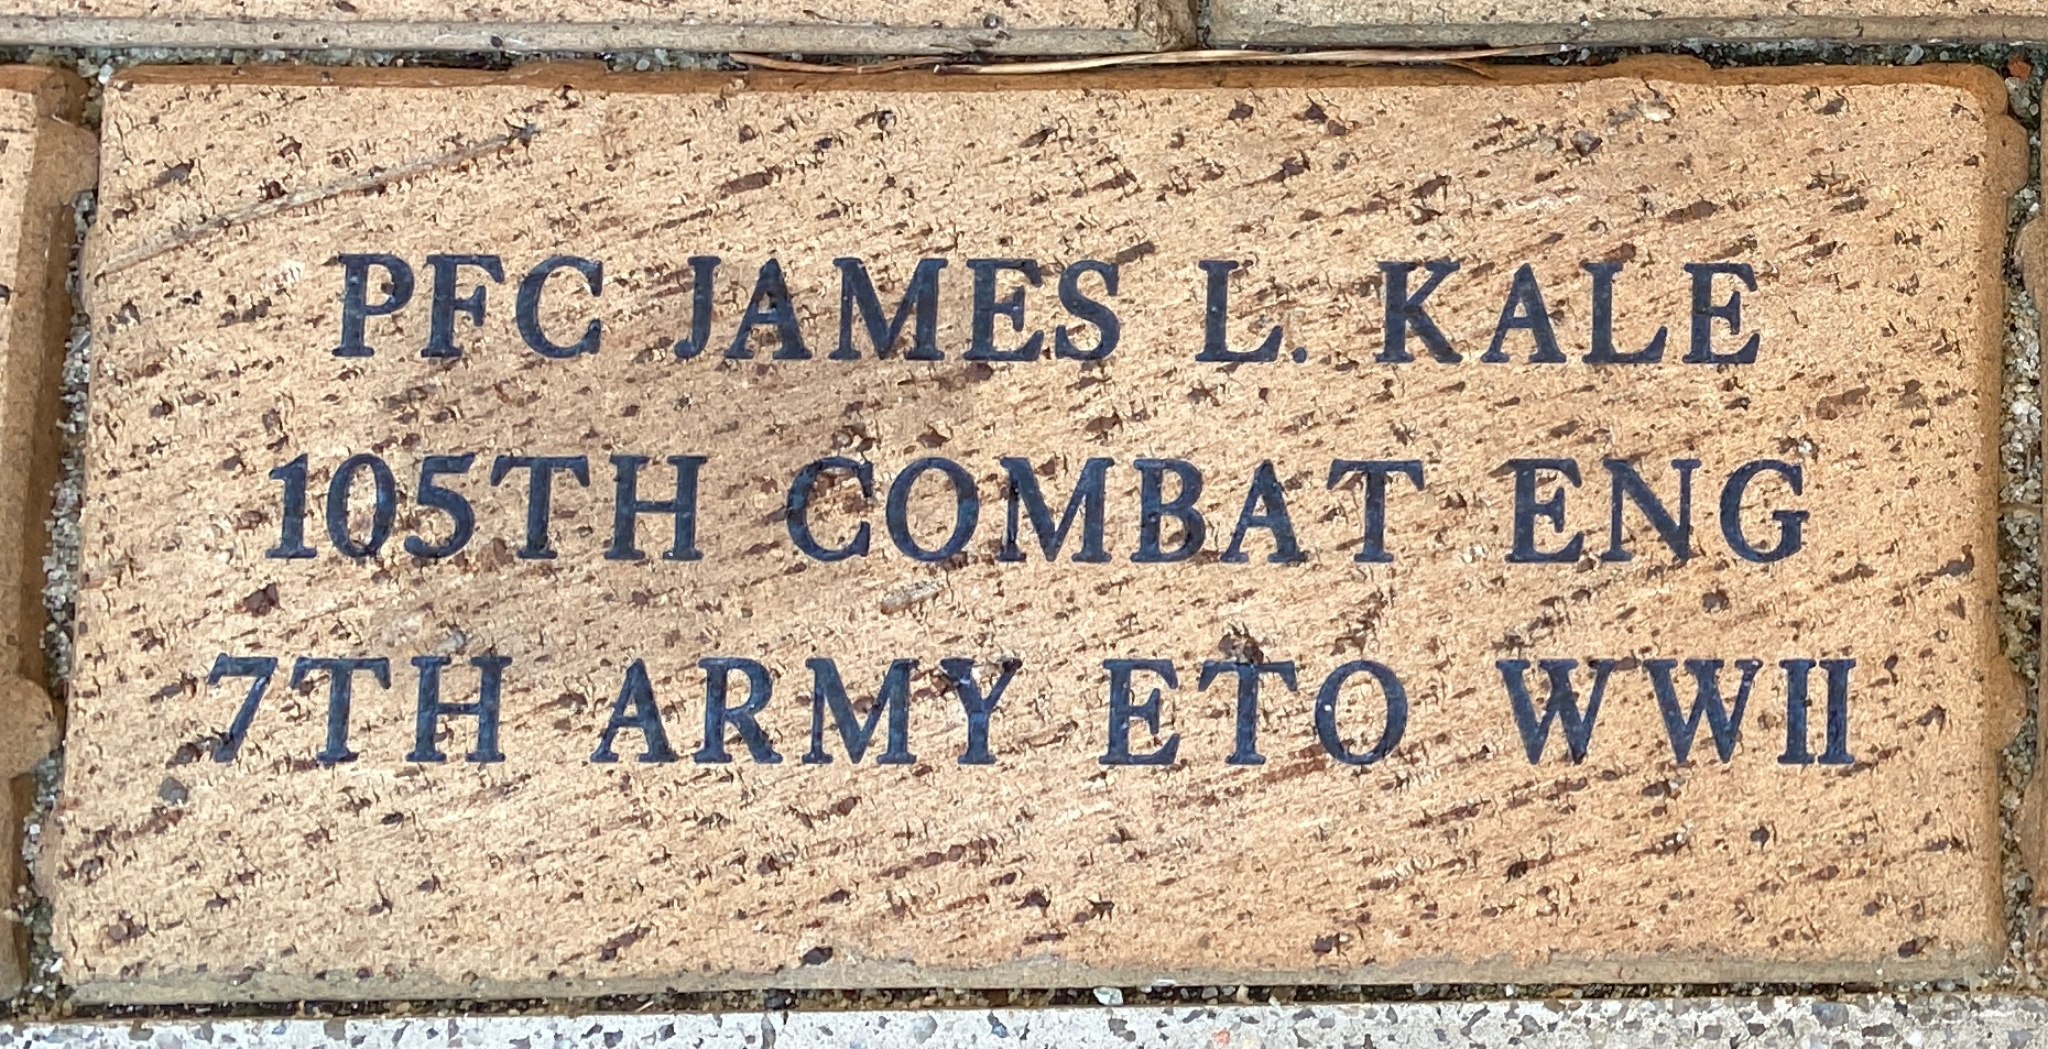 PFC JAMES L. KALE 105TH COMBAT ENG 7TH ARMY ETO WWII